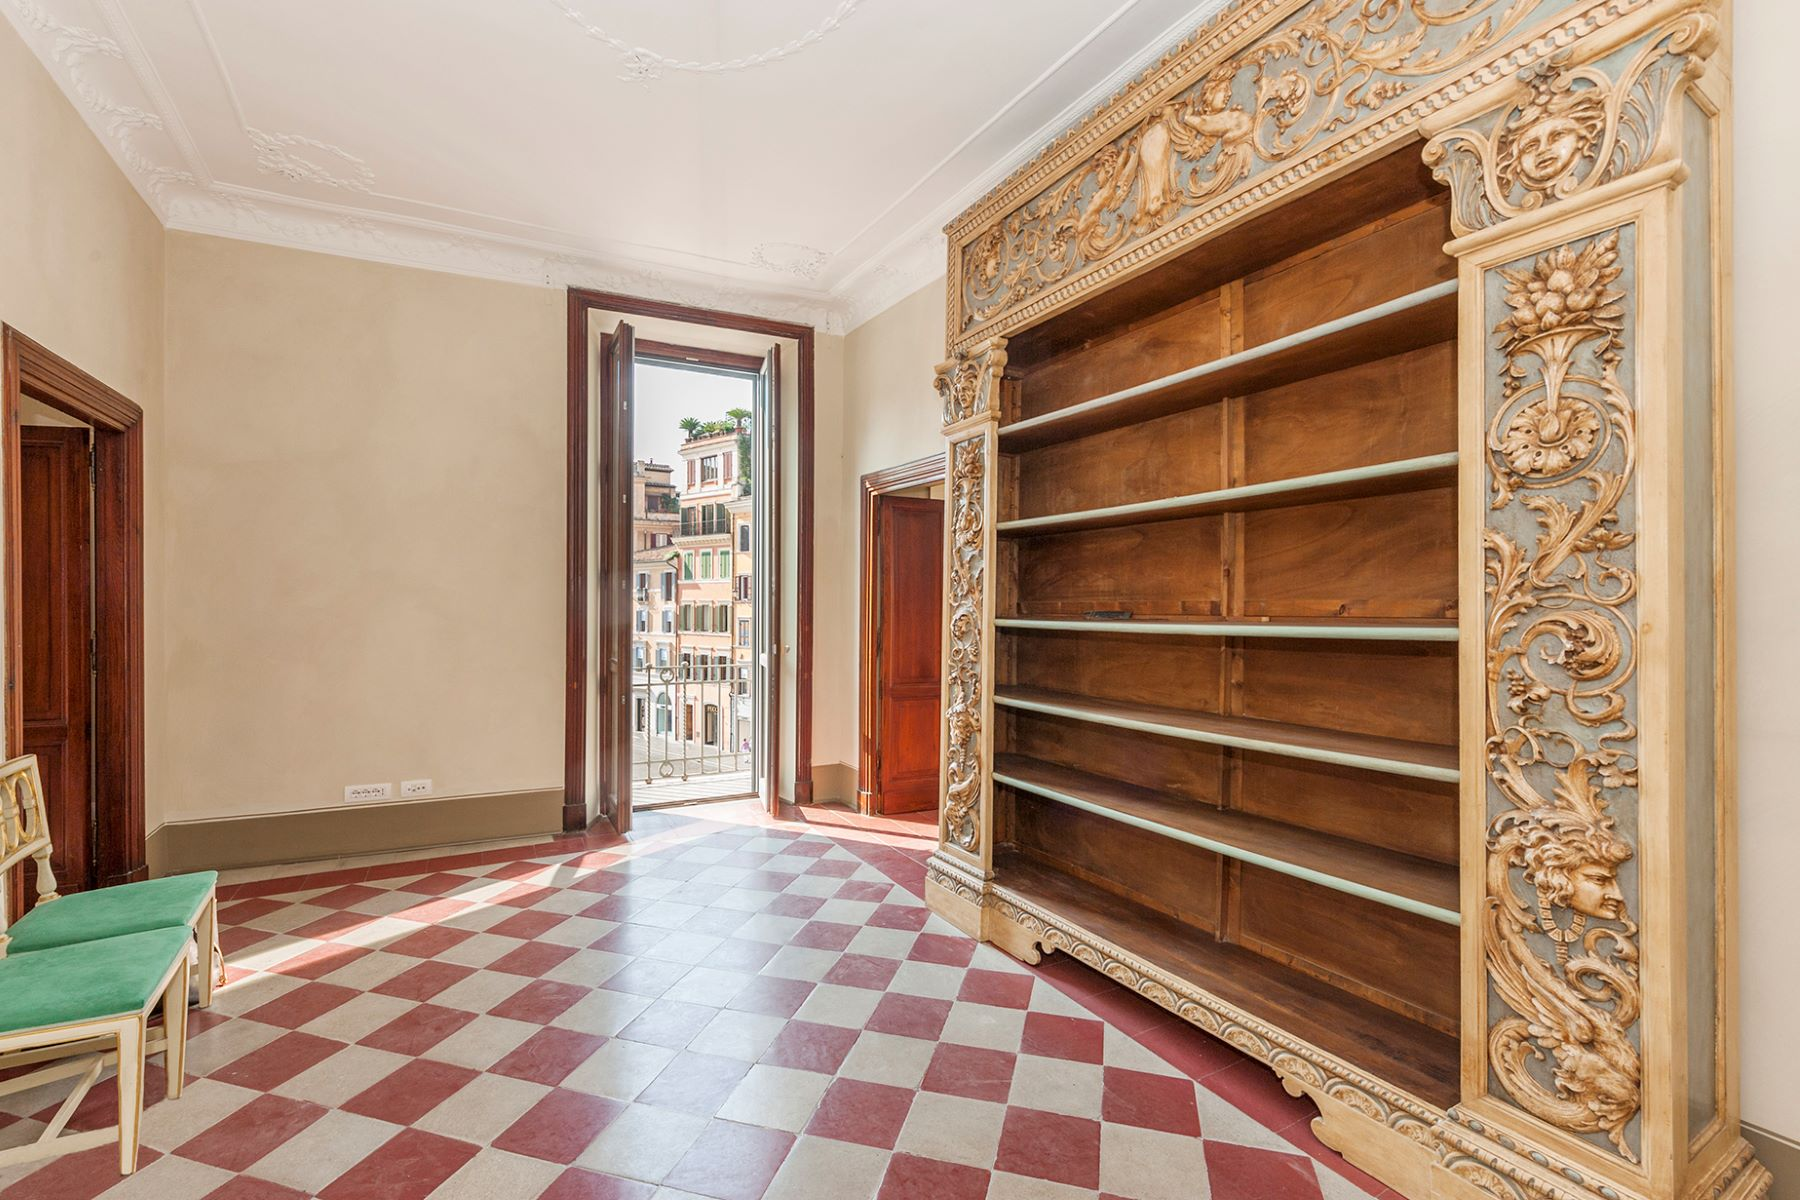 Apartment for Rent at Magnificent apartment overlooking Piazza di Spagna Rome, Rome Italy